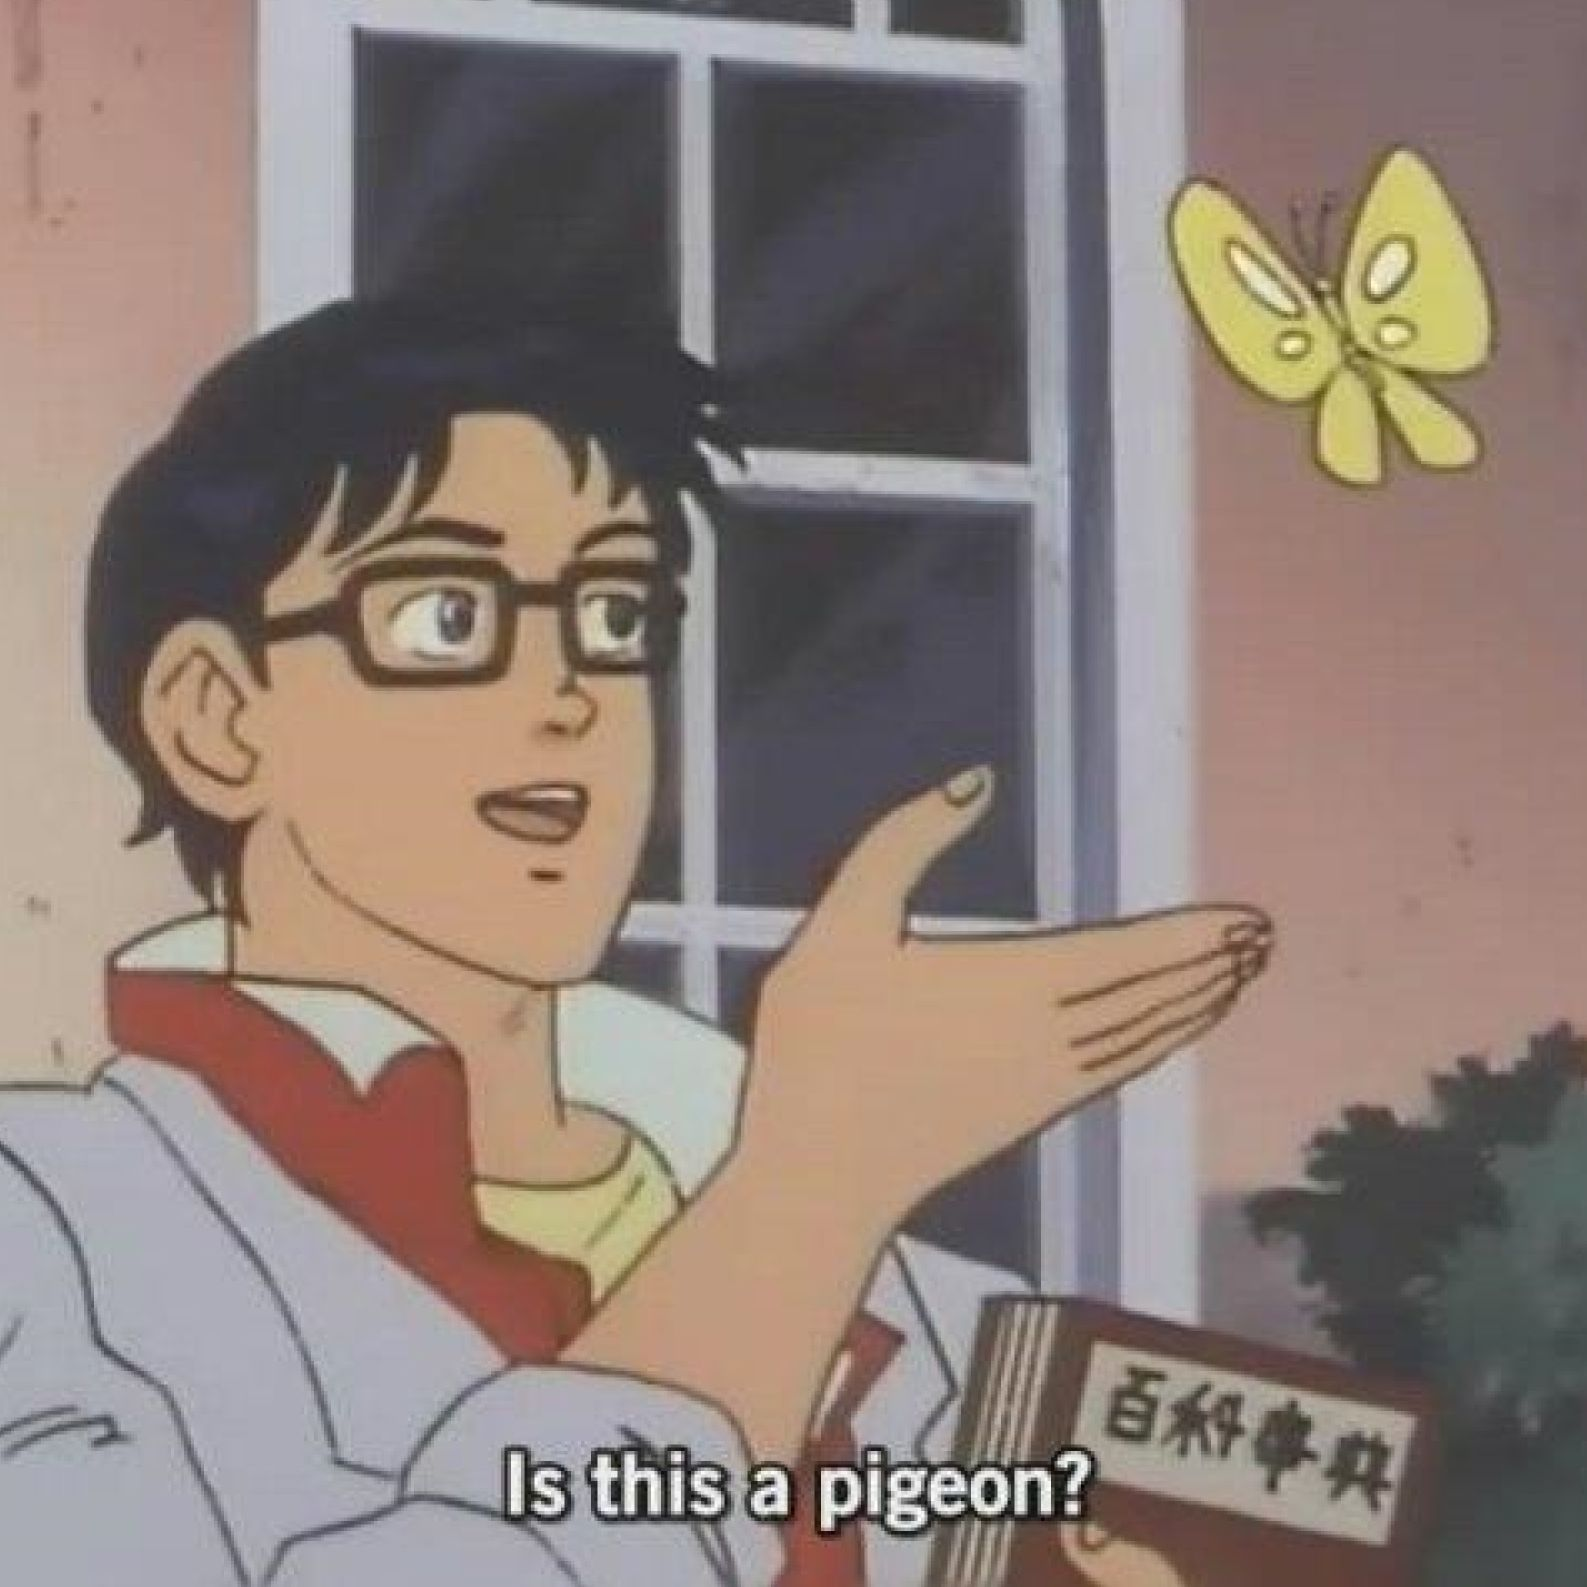 High Quality Is this a pigeon? anime Meme  Blank Meme Template